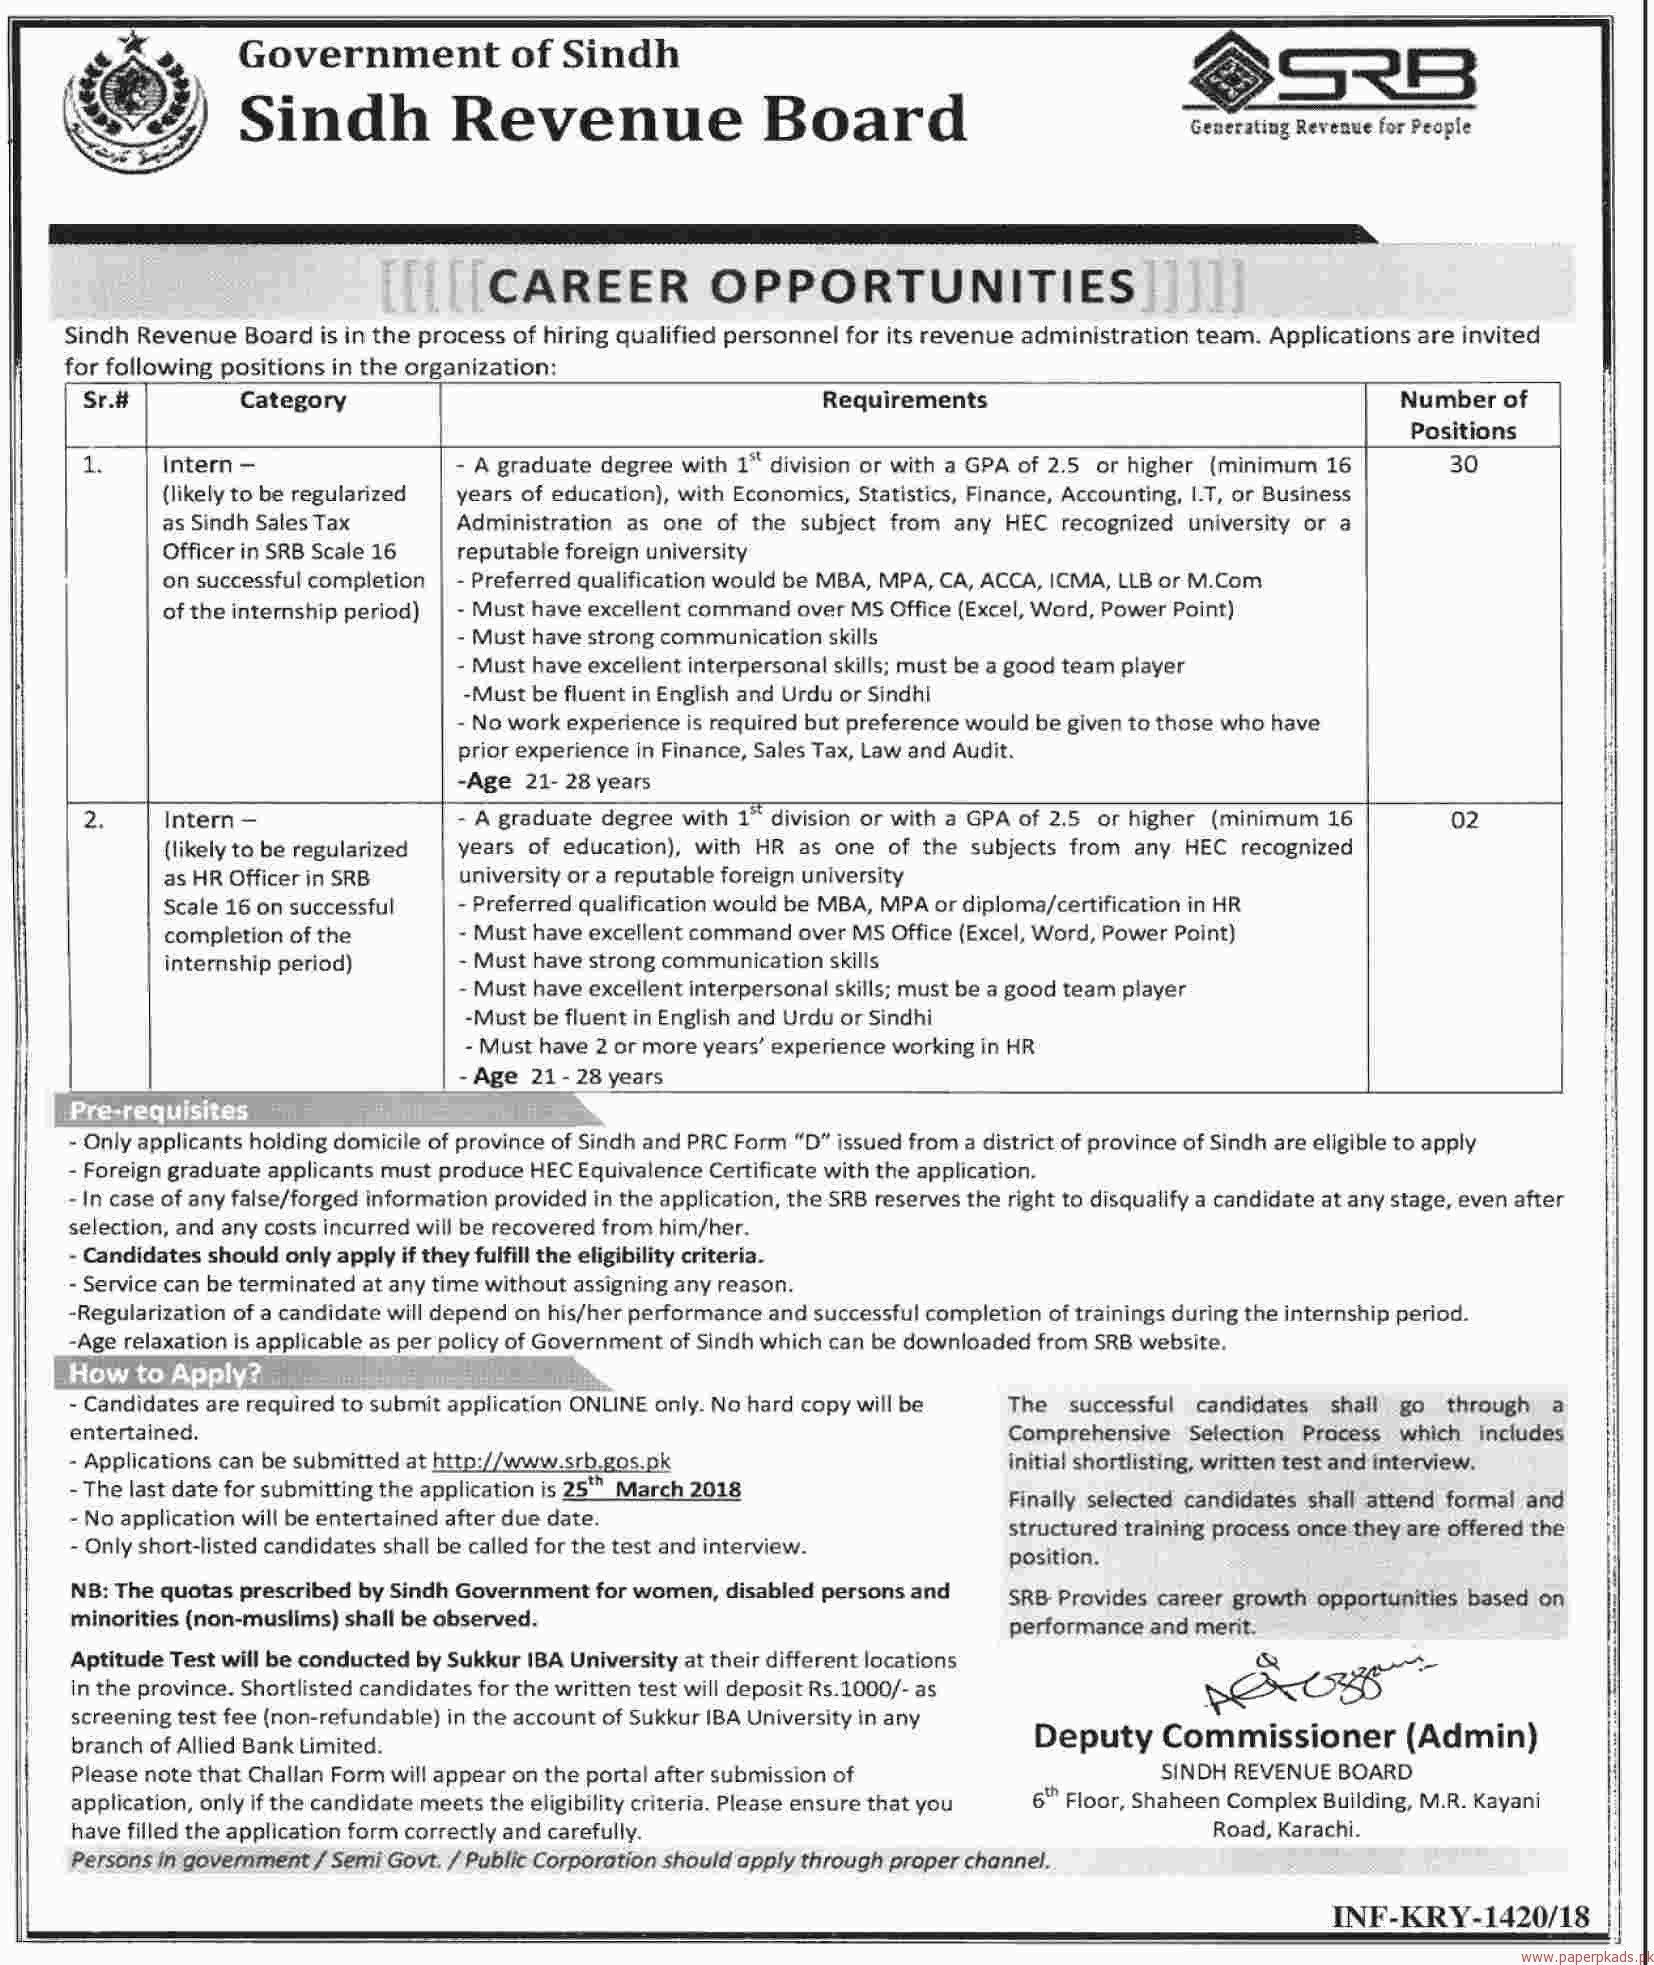 Government of Sindh - Sindh Revenue board Jobs 2018